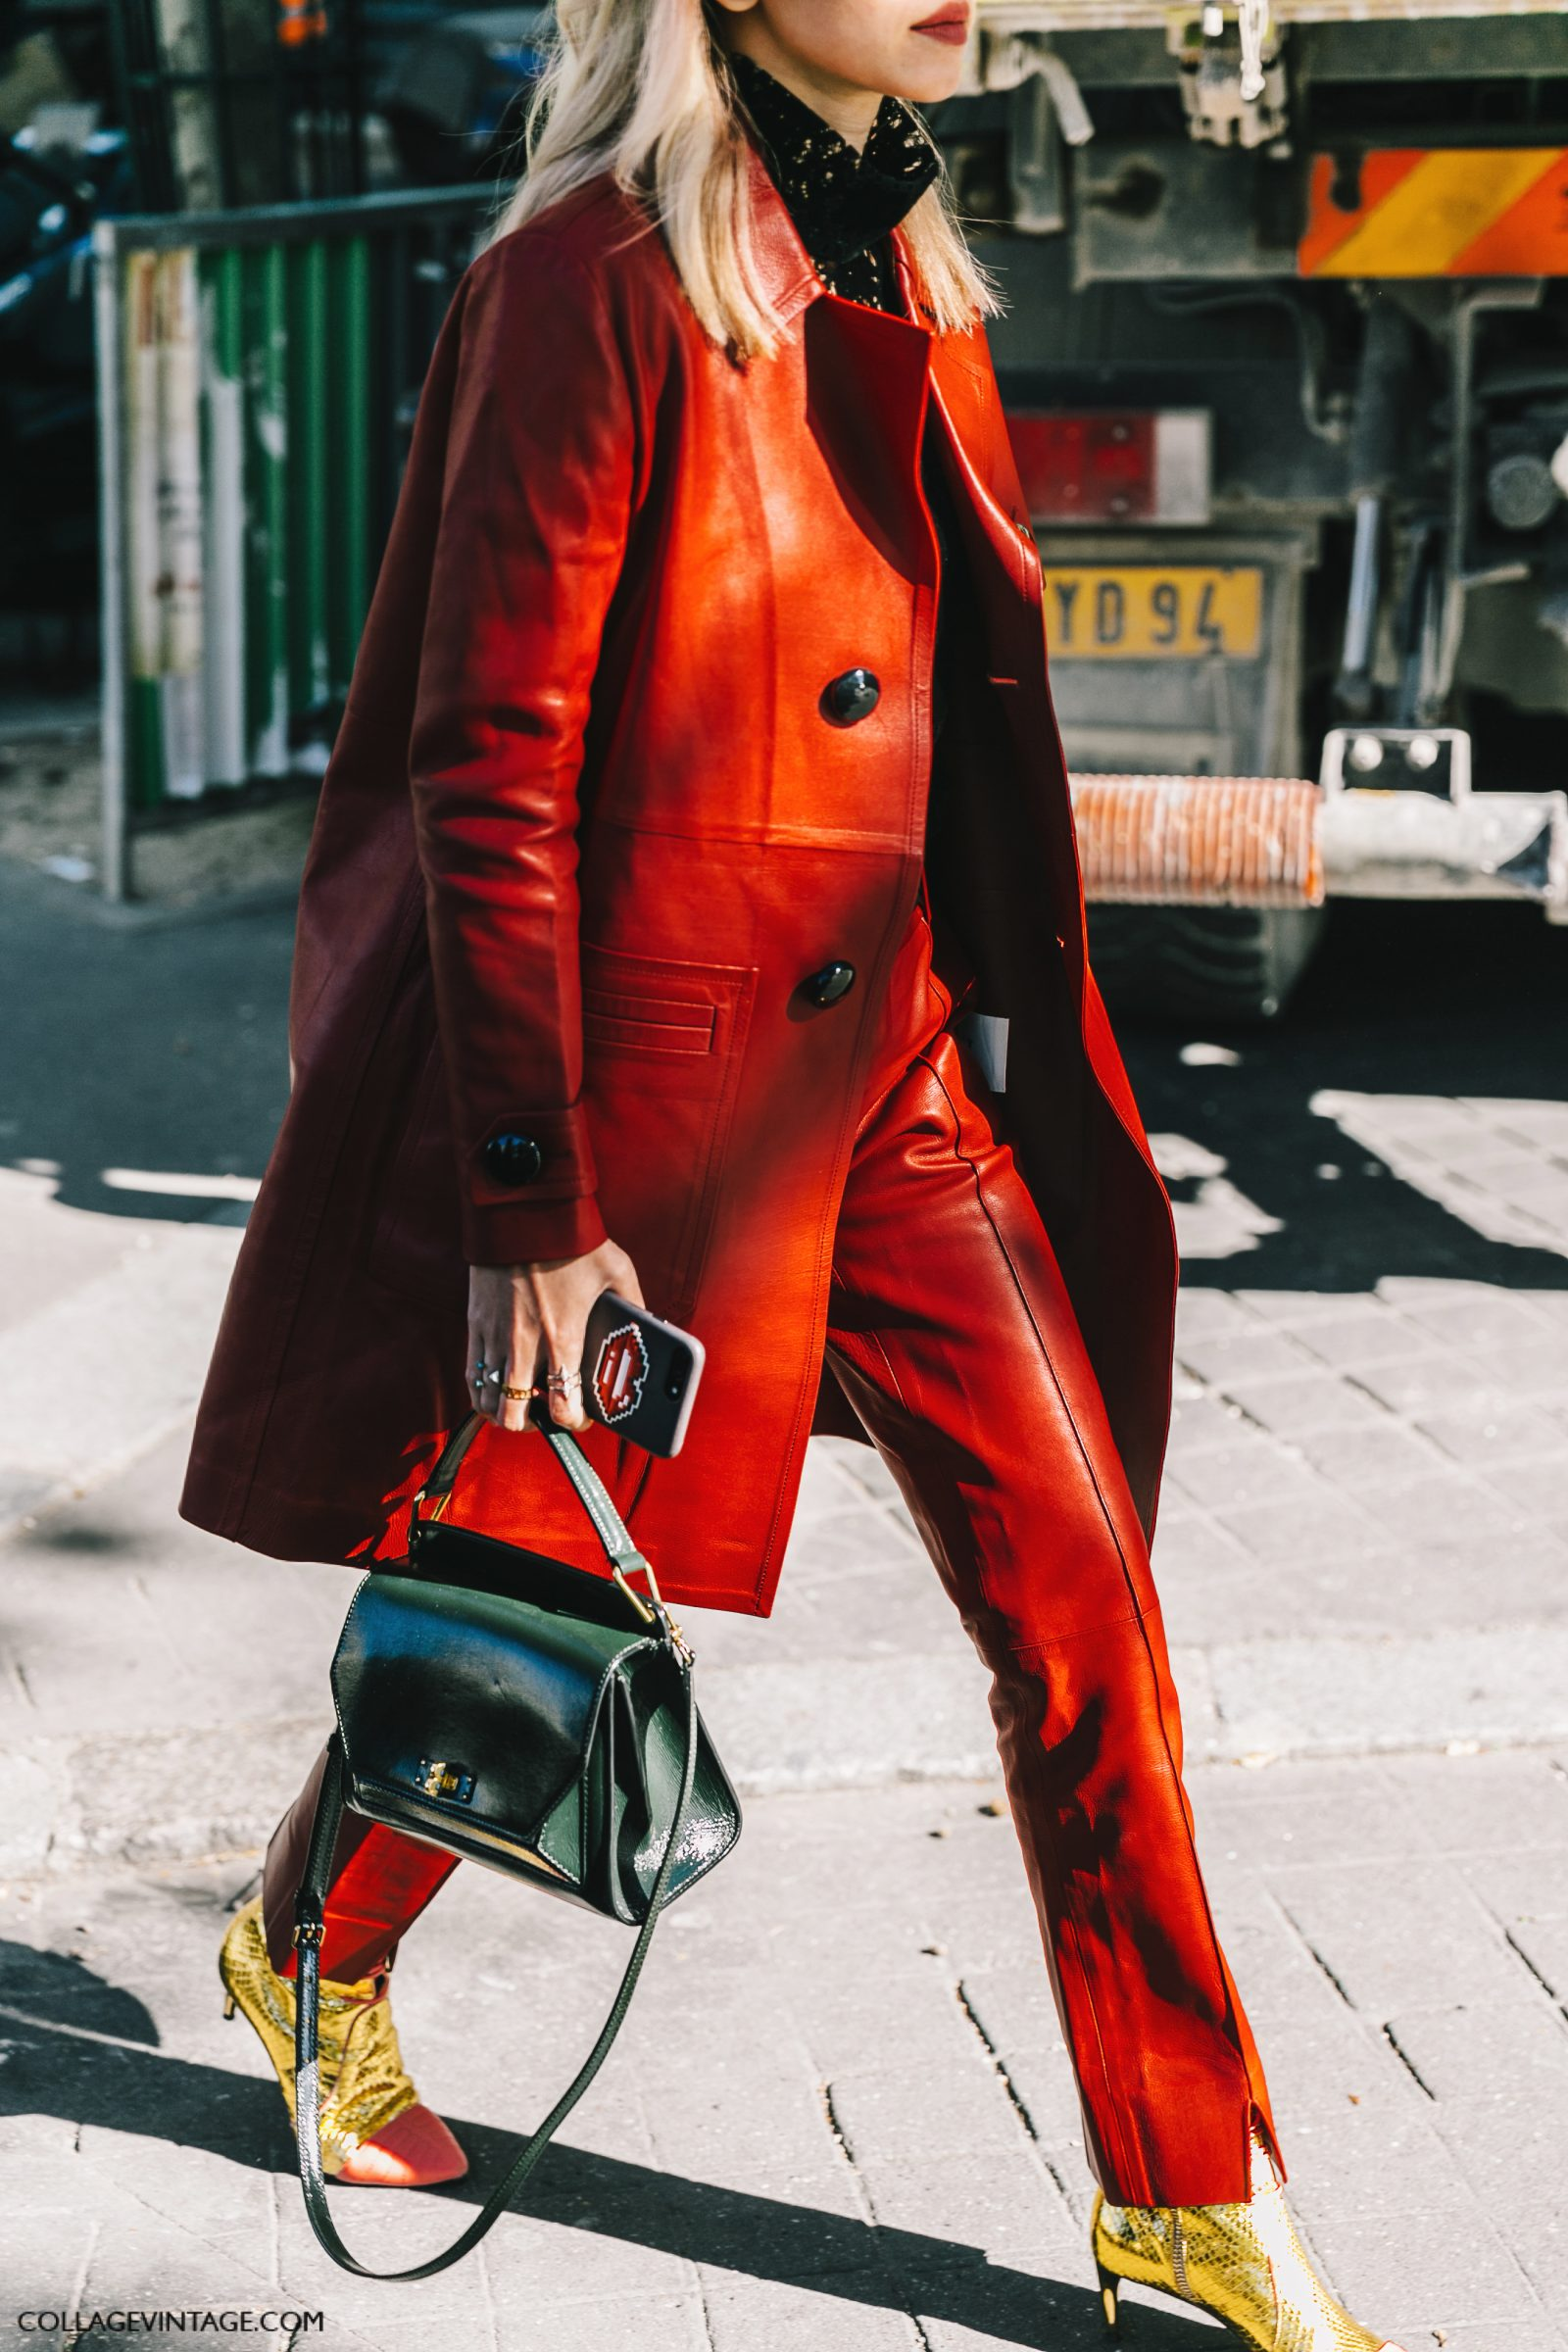 pfw-paris_fashion_week_ss17-street_style-outfit-collage_vintage-louis_vuitton-miu_miu-121